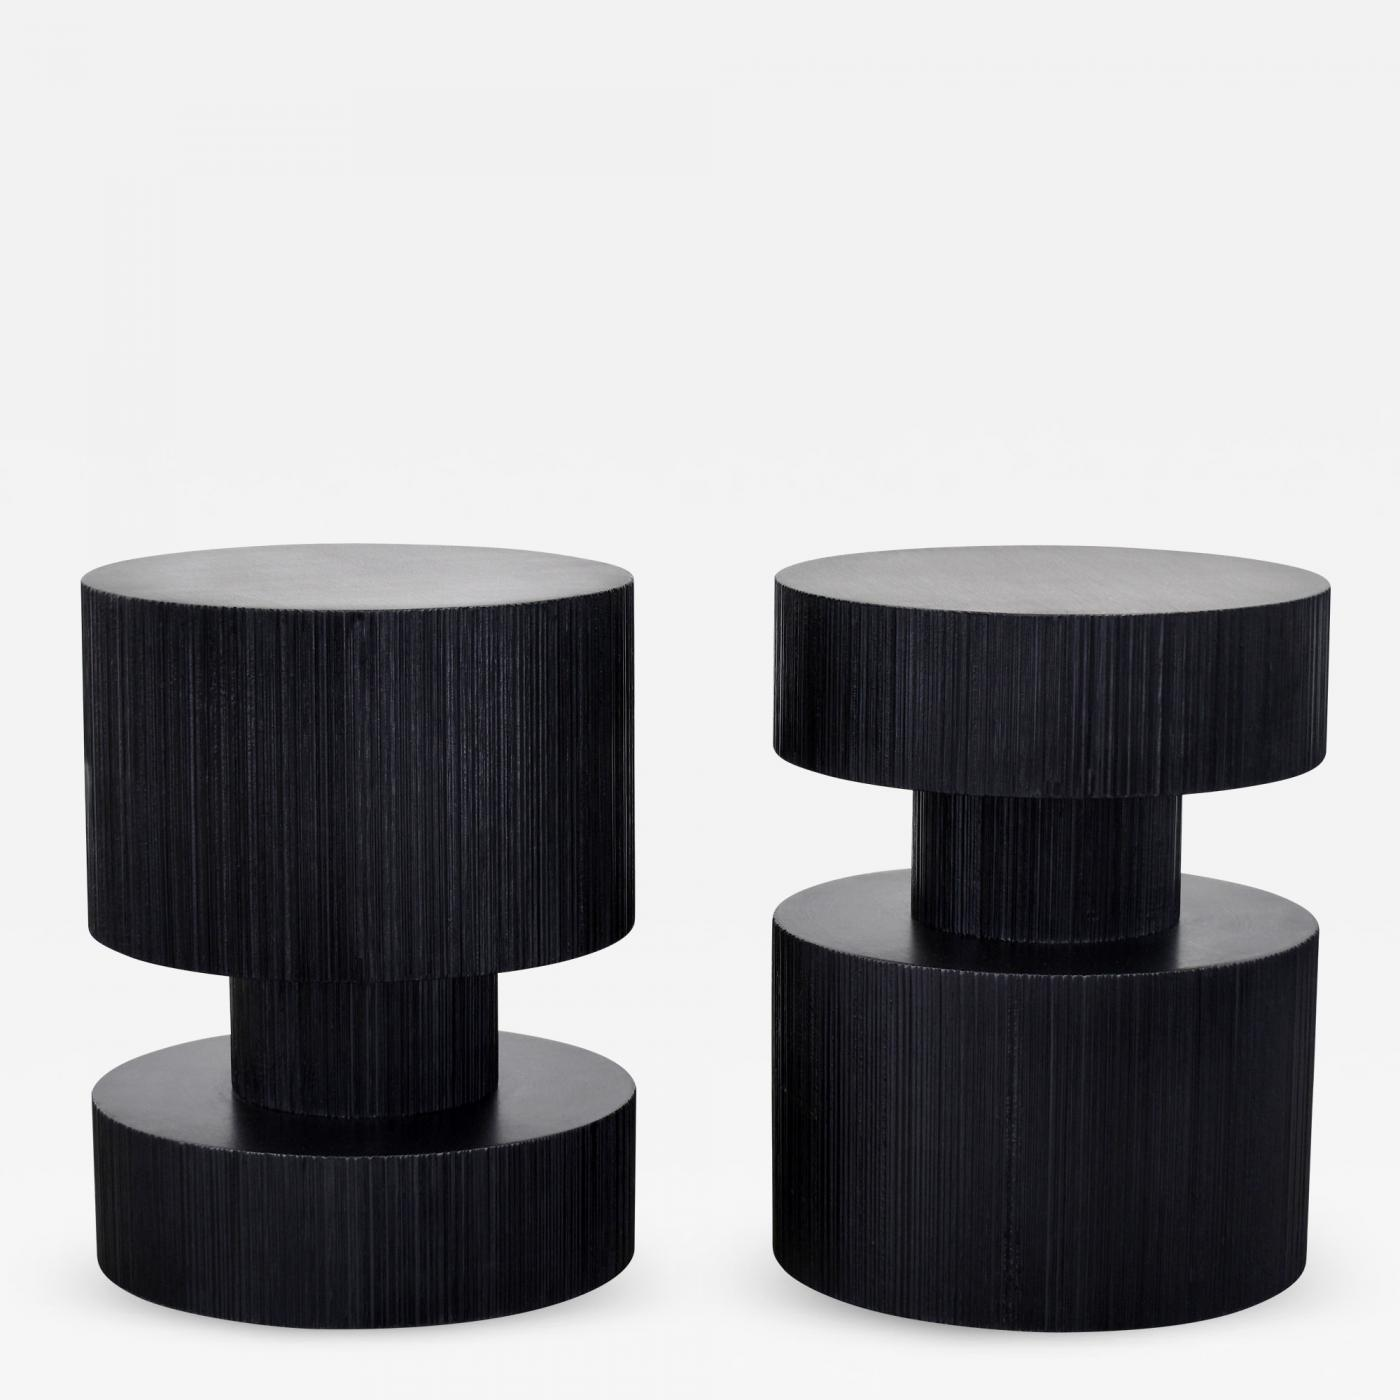 Coffee Table With Stools.John Eric Byers Revert End Tables Stools By John Eric Byers